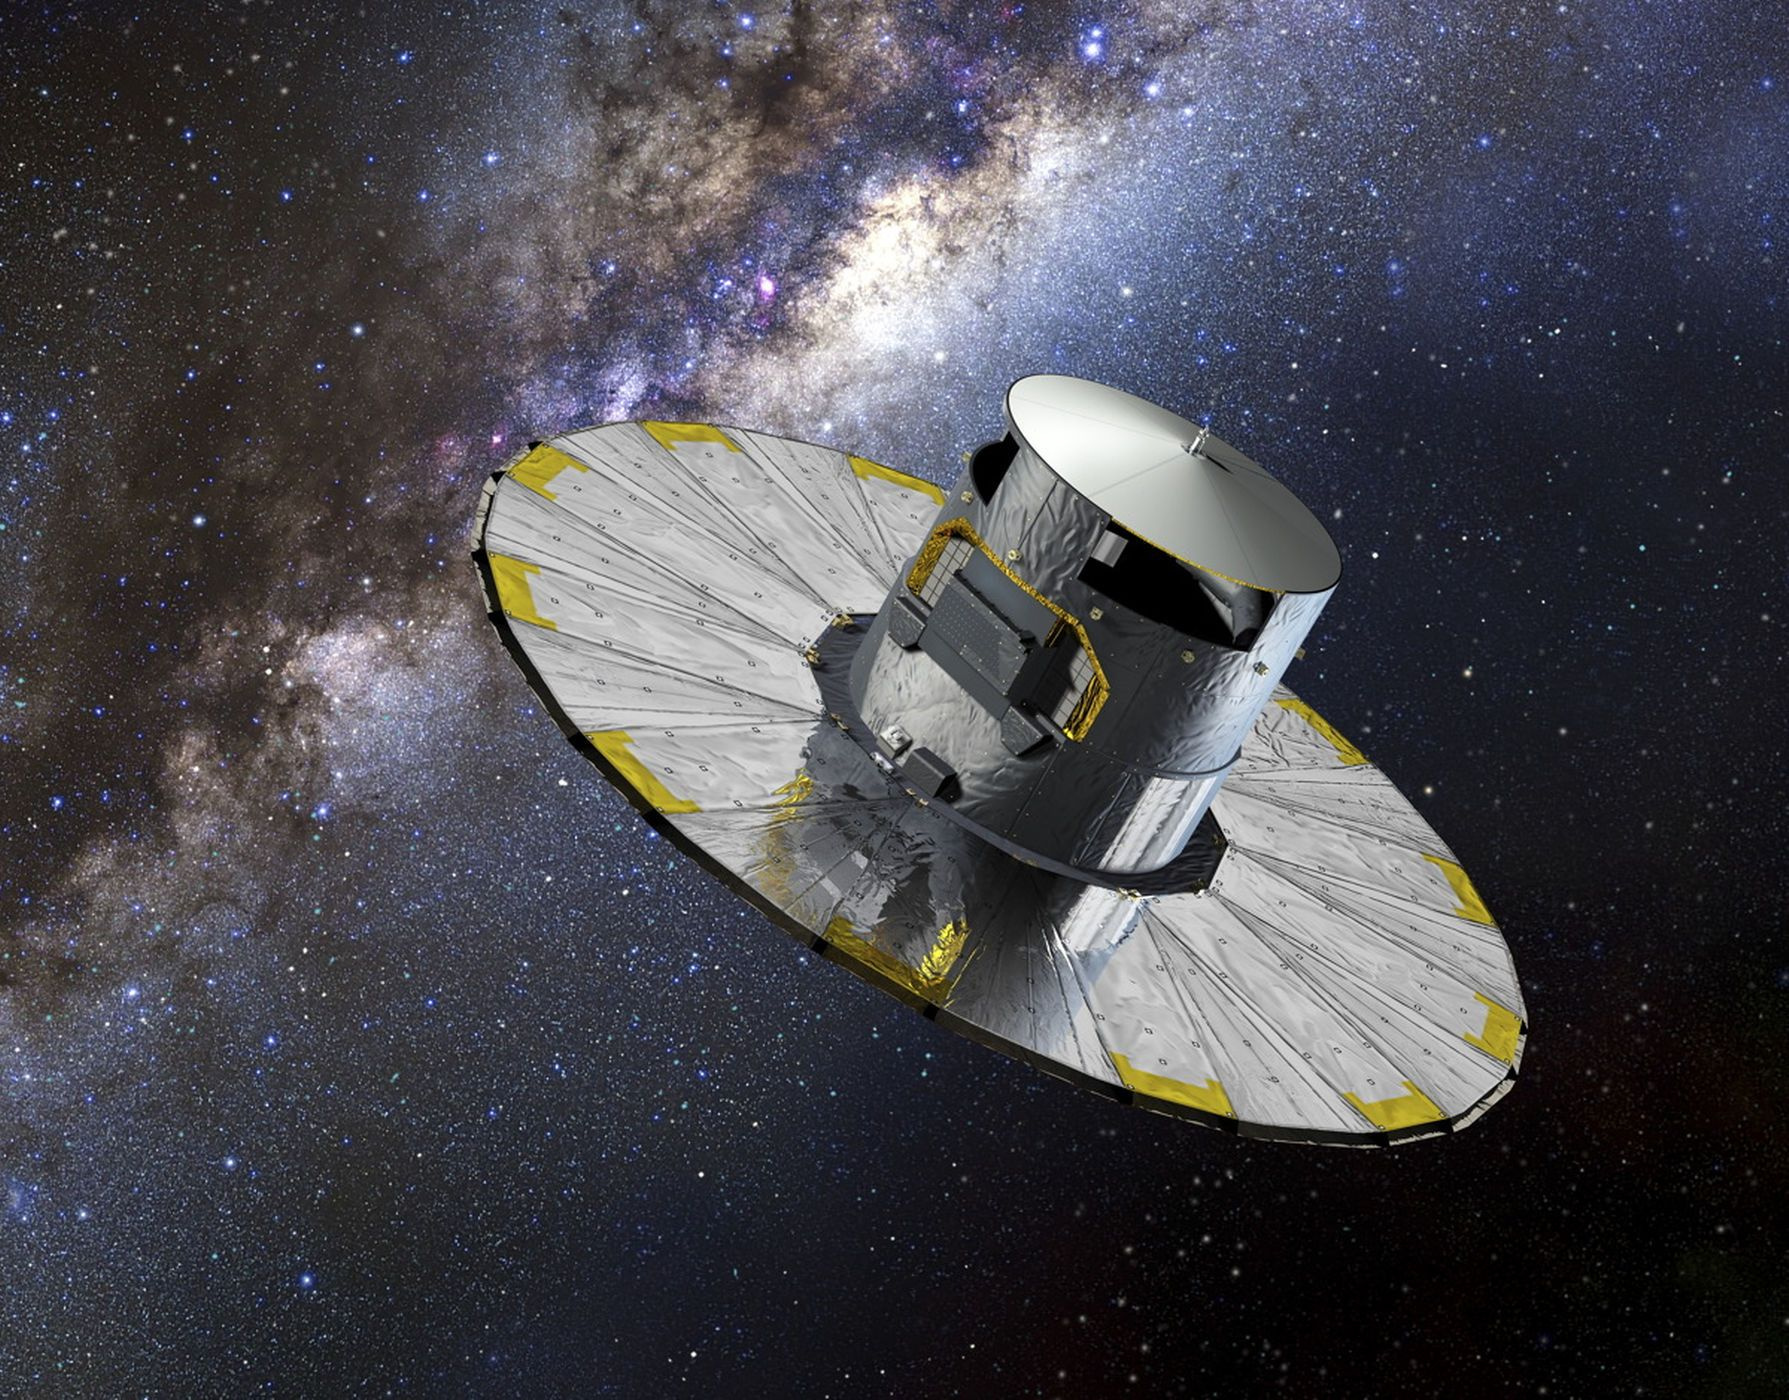 See photos and images from the European Space Agency's Gaia mission to map the Milky Way galaxy.